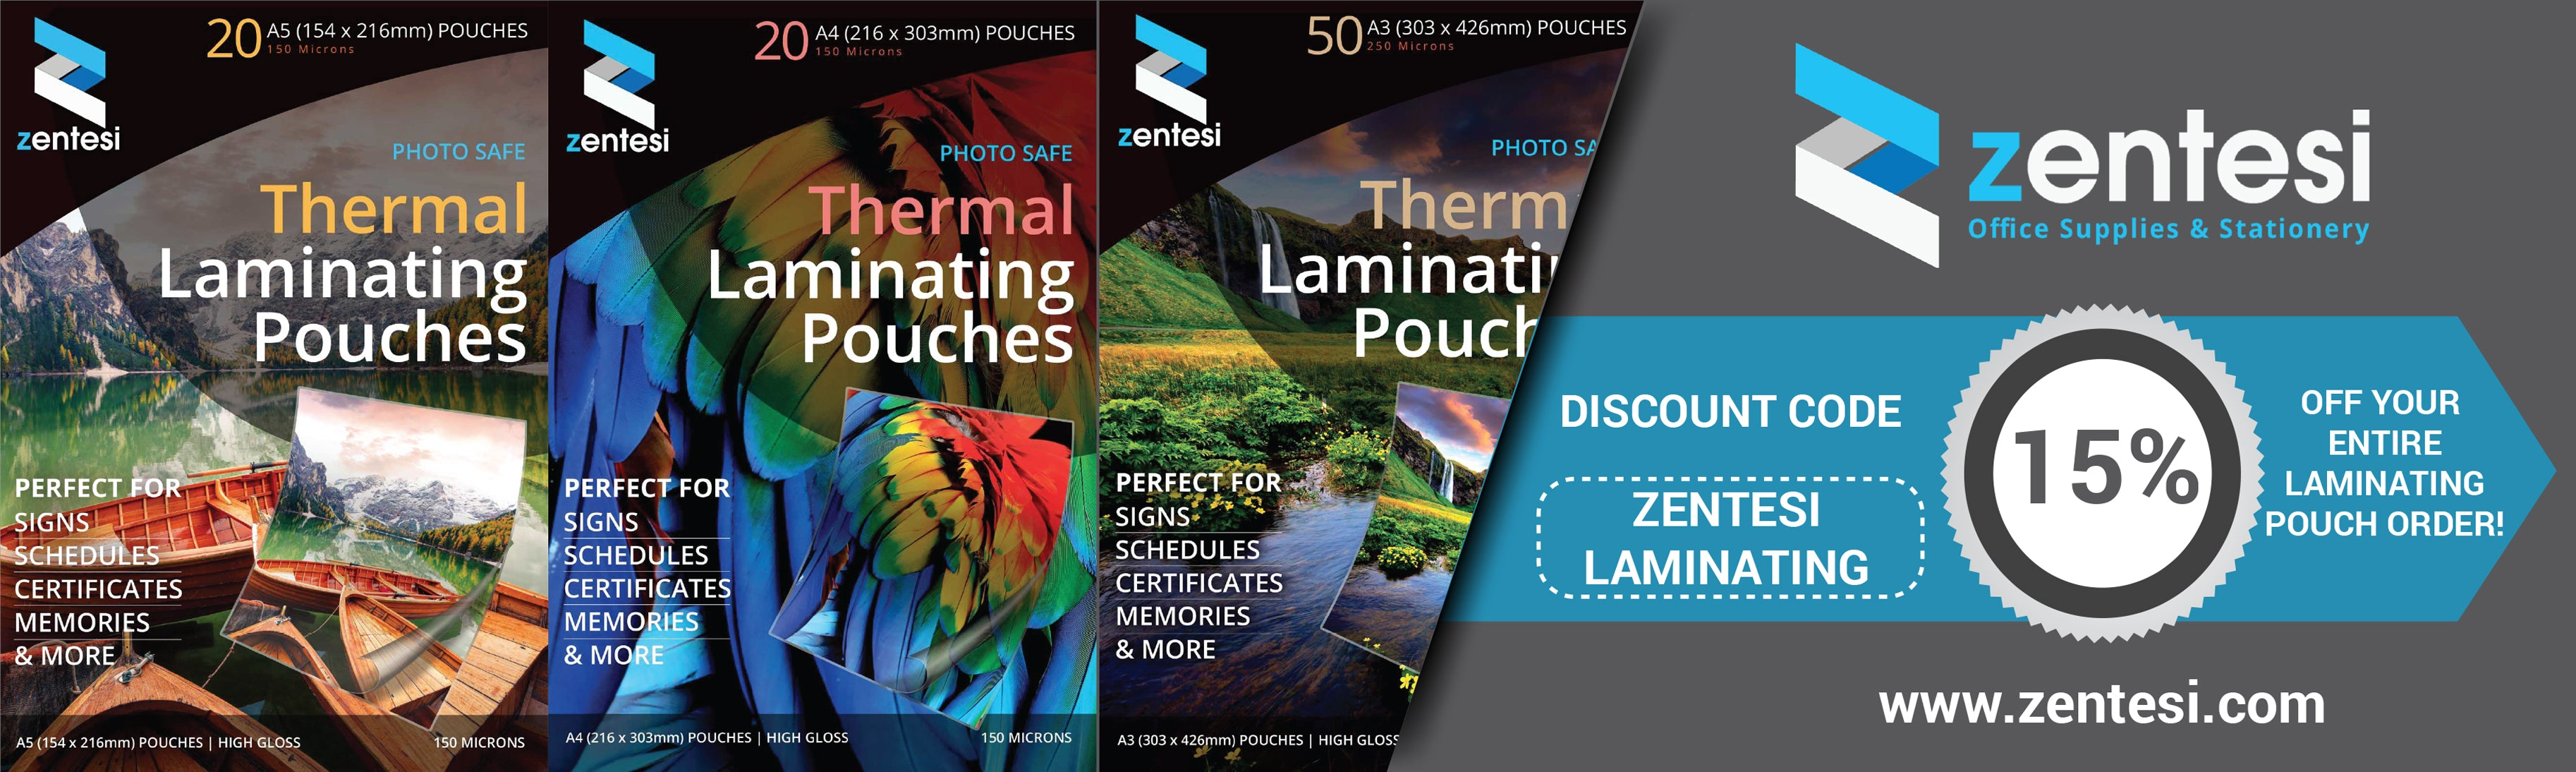 Zentesi Laminating Pouches